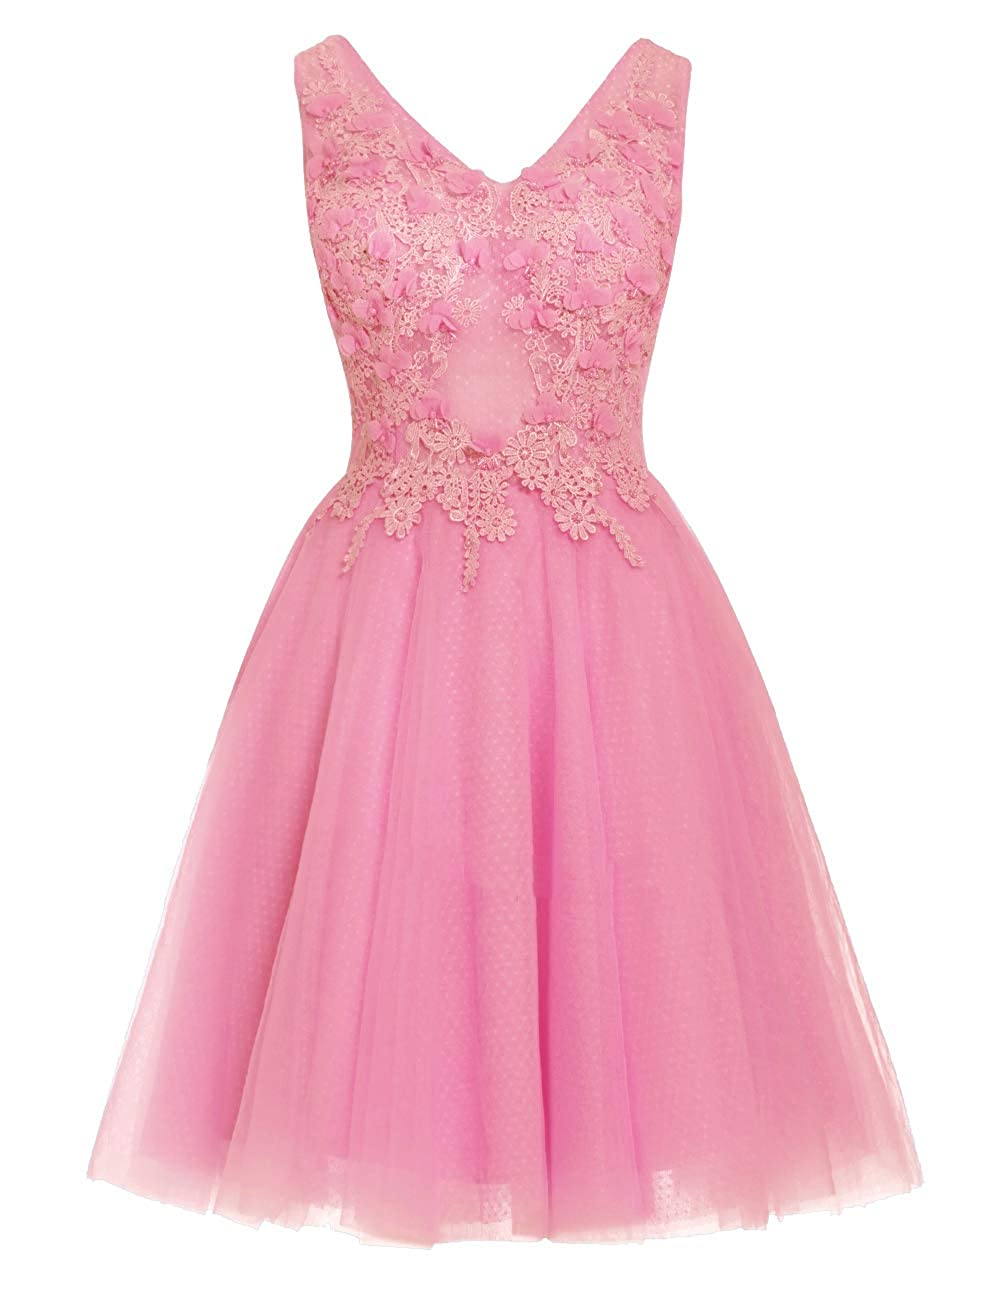 Deep Pink Uther Short Homecoming Dresses Lace Appliques 2018 Prom Wedding Party Dress V Neck